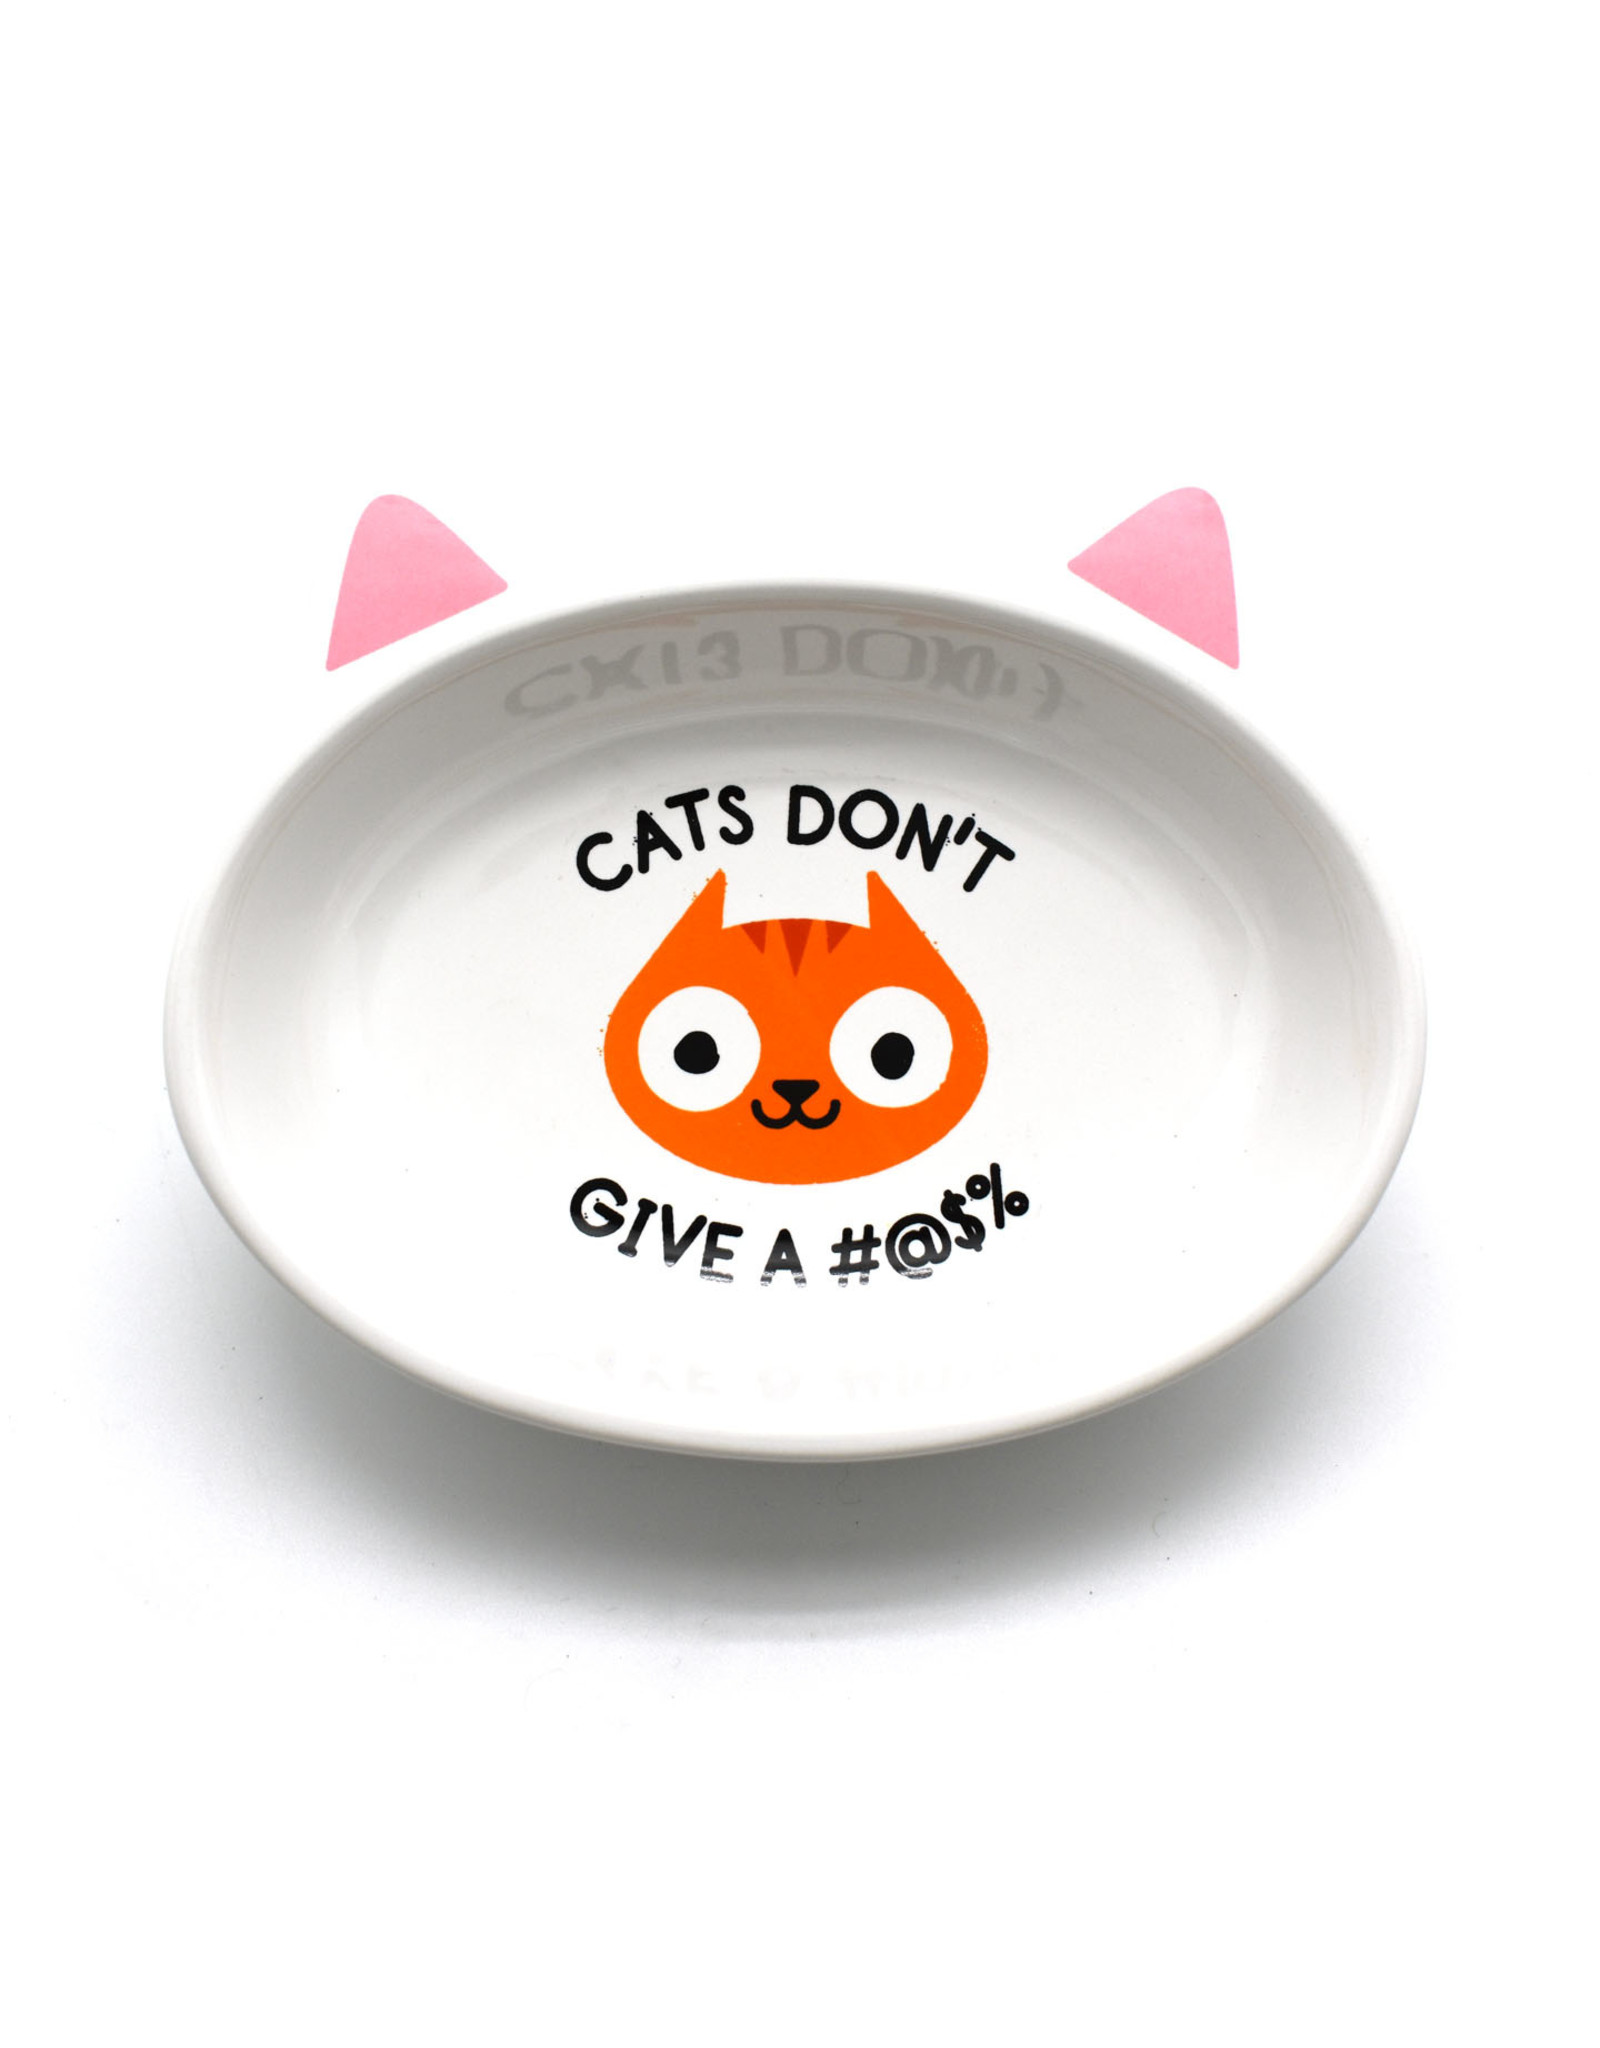 Cat's Don't Give A #*@$% Ceramic Cat Dish